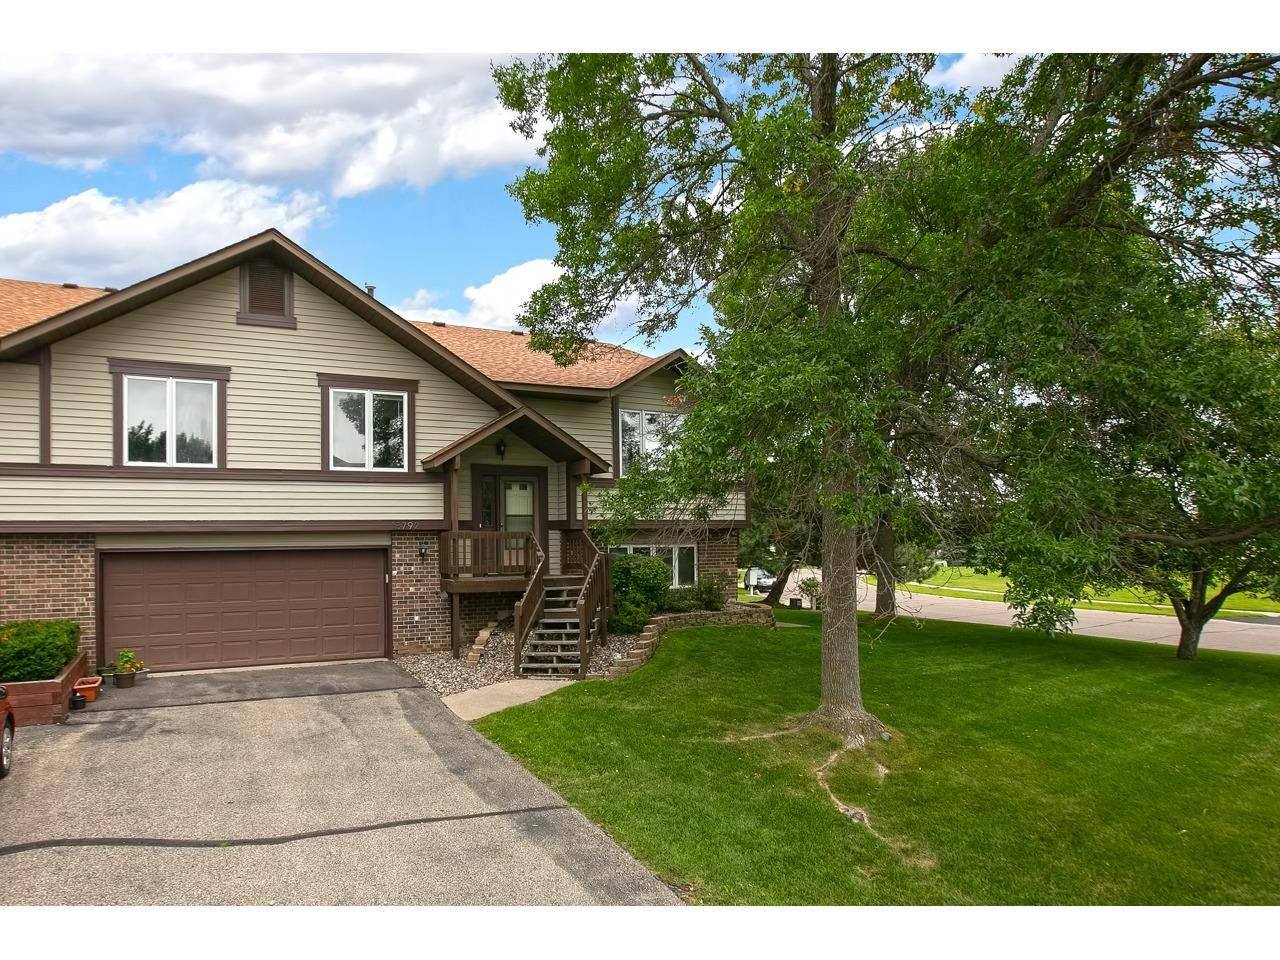 15792 Hannover Path, Apple Valley, MN 55124 - MLS#: 5642806